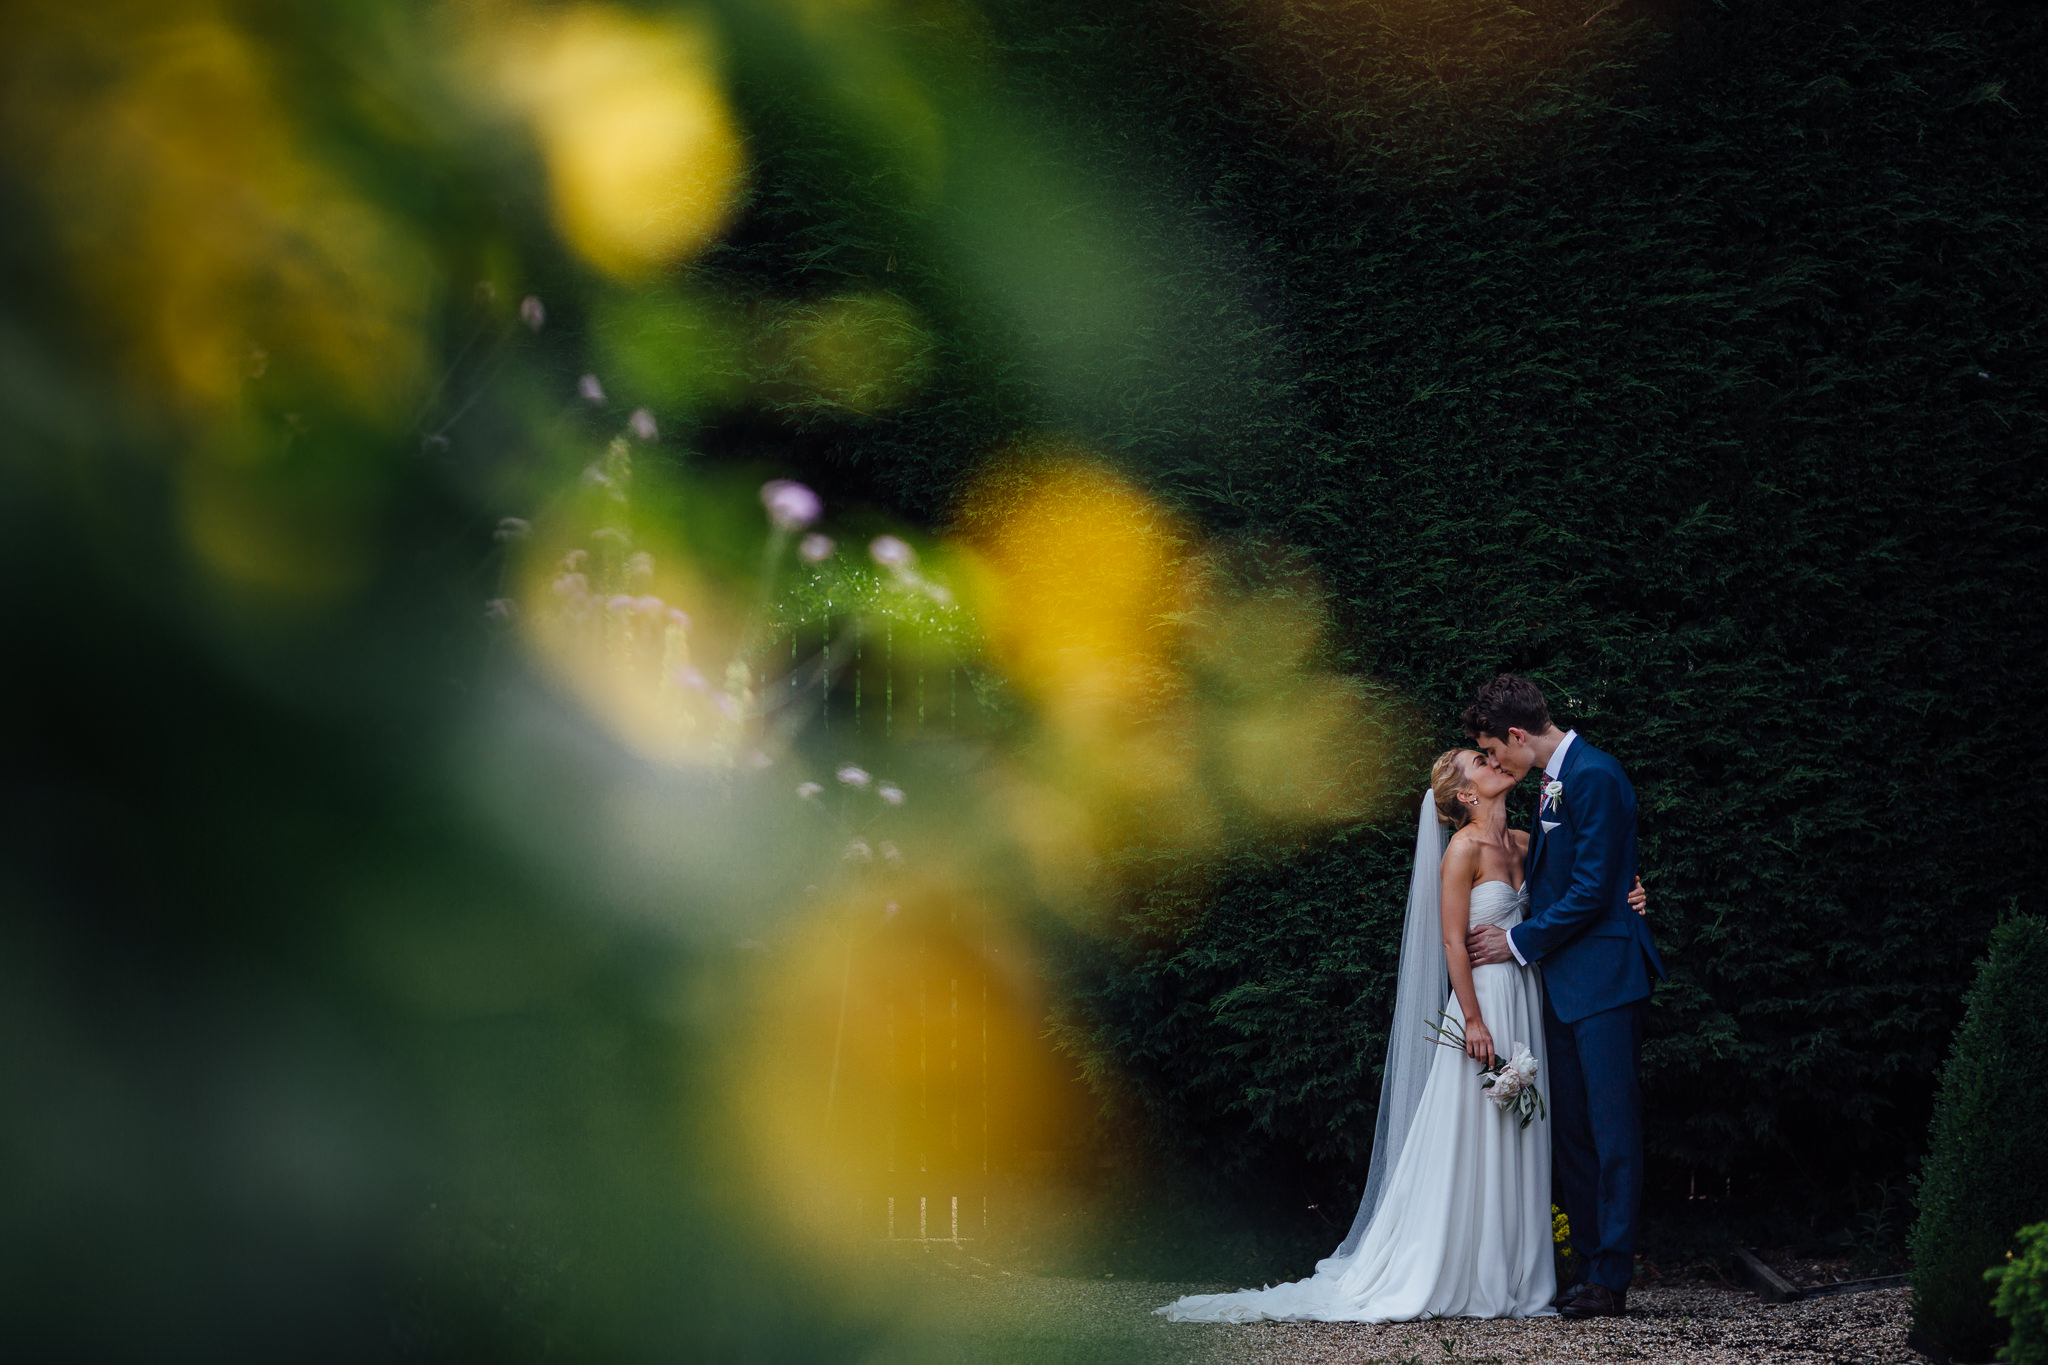 paul-marbrook-best-wedding-photographer-north-wales-077020